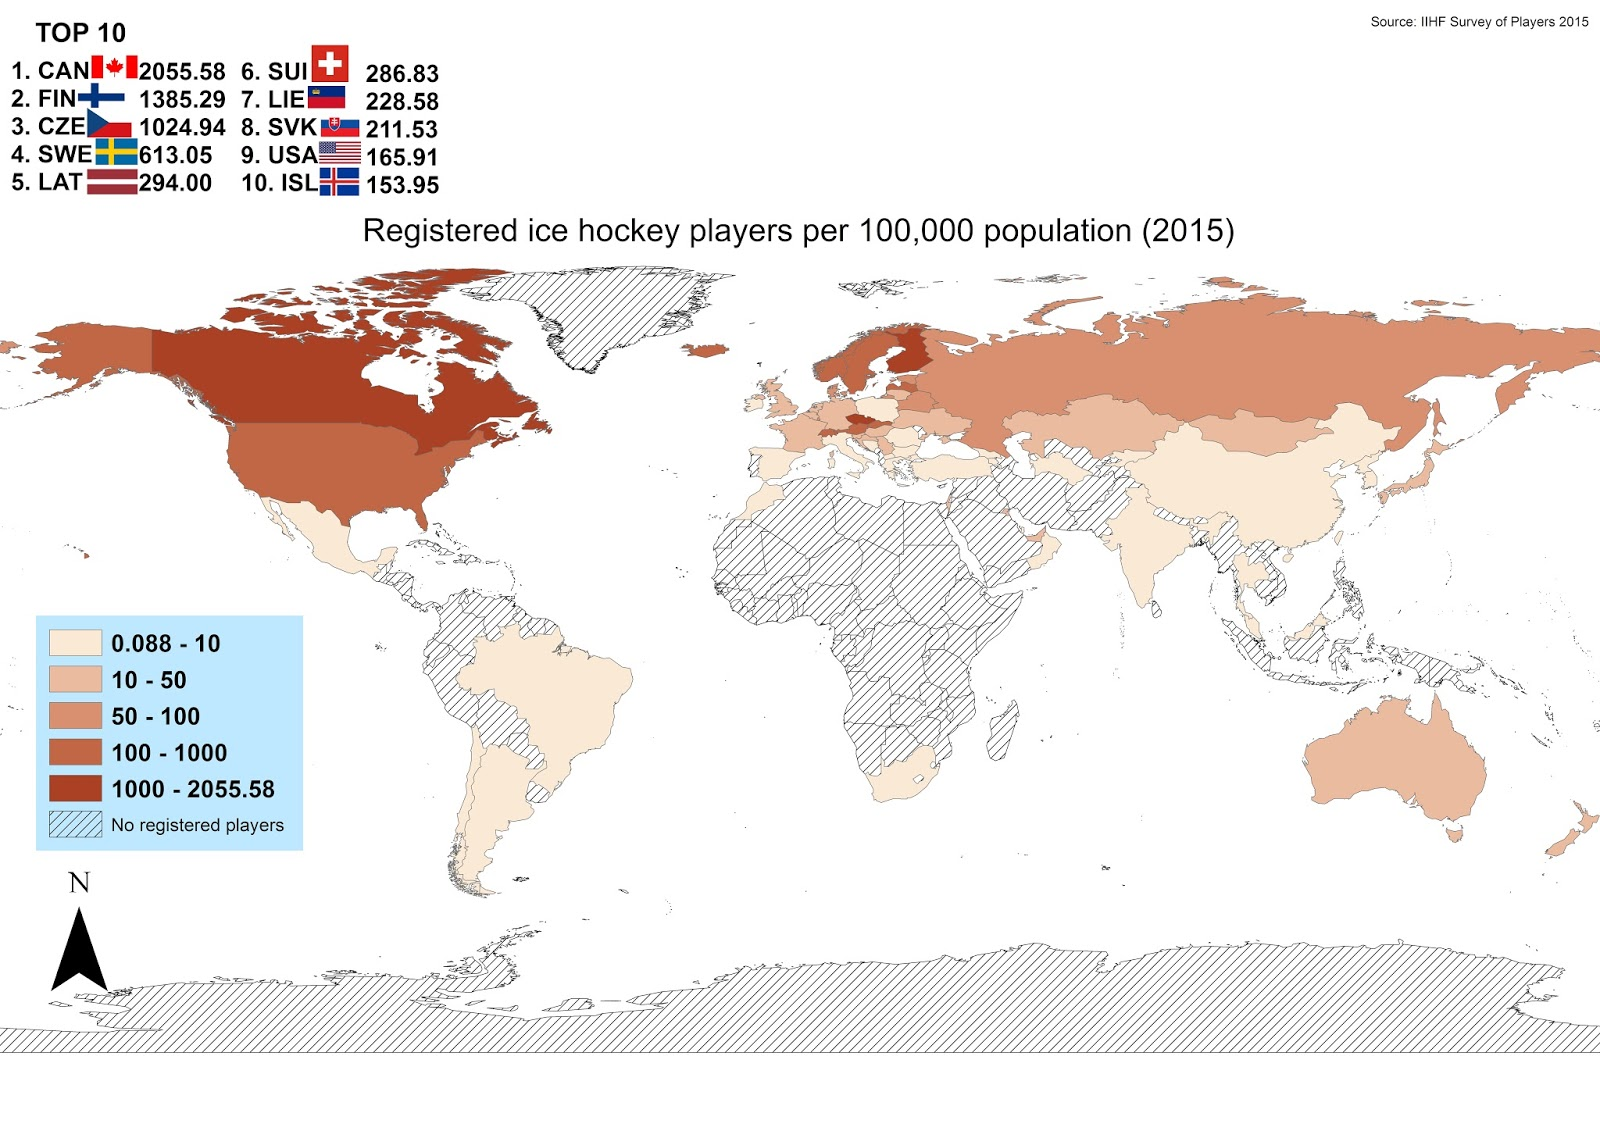 Registered ice hockey players per 100,000 population